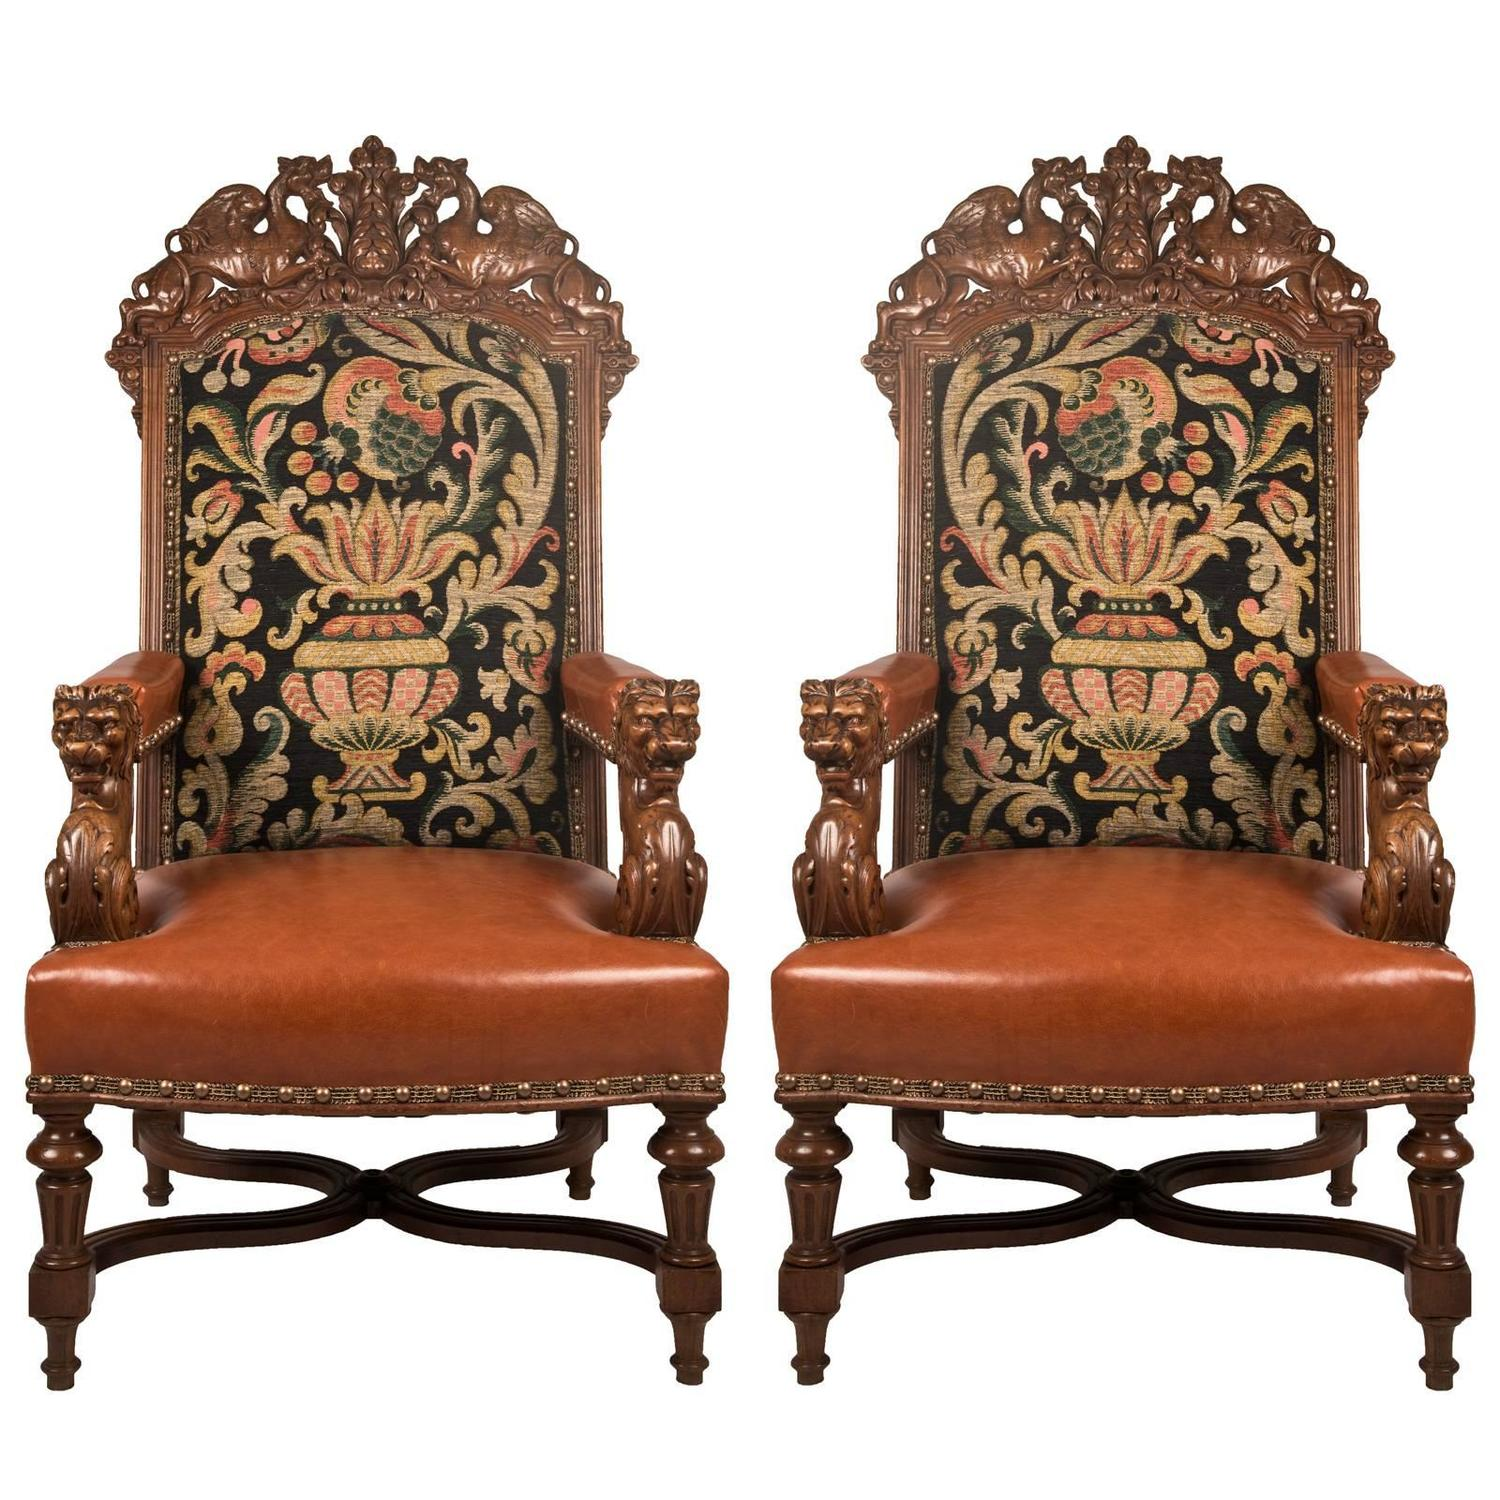 Louis Xiv Furniture Style: Pair Of 19th Century Louis XIV Style Fauteuil Walnut